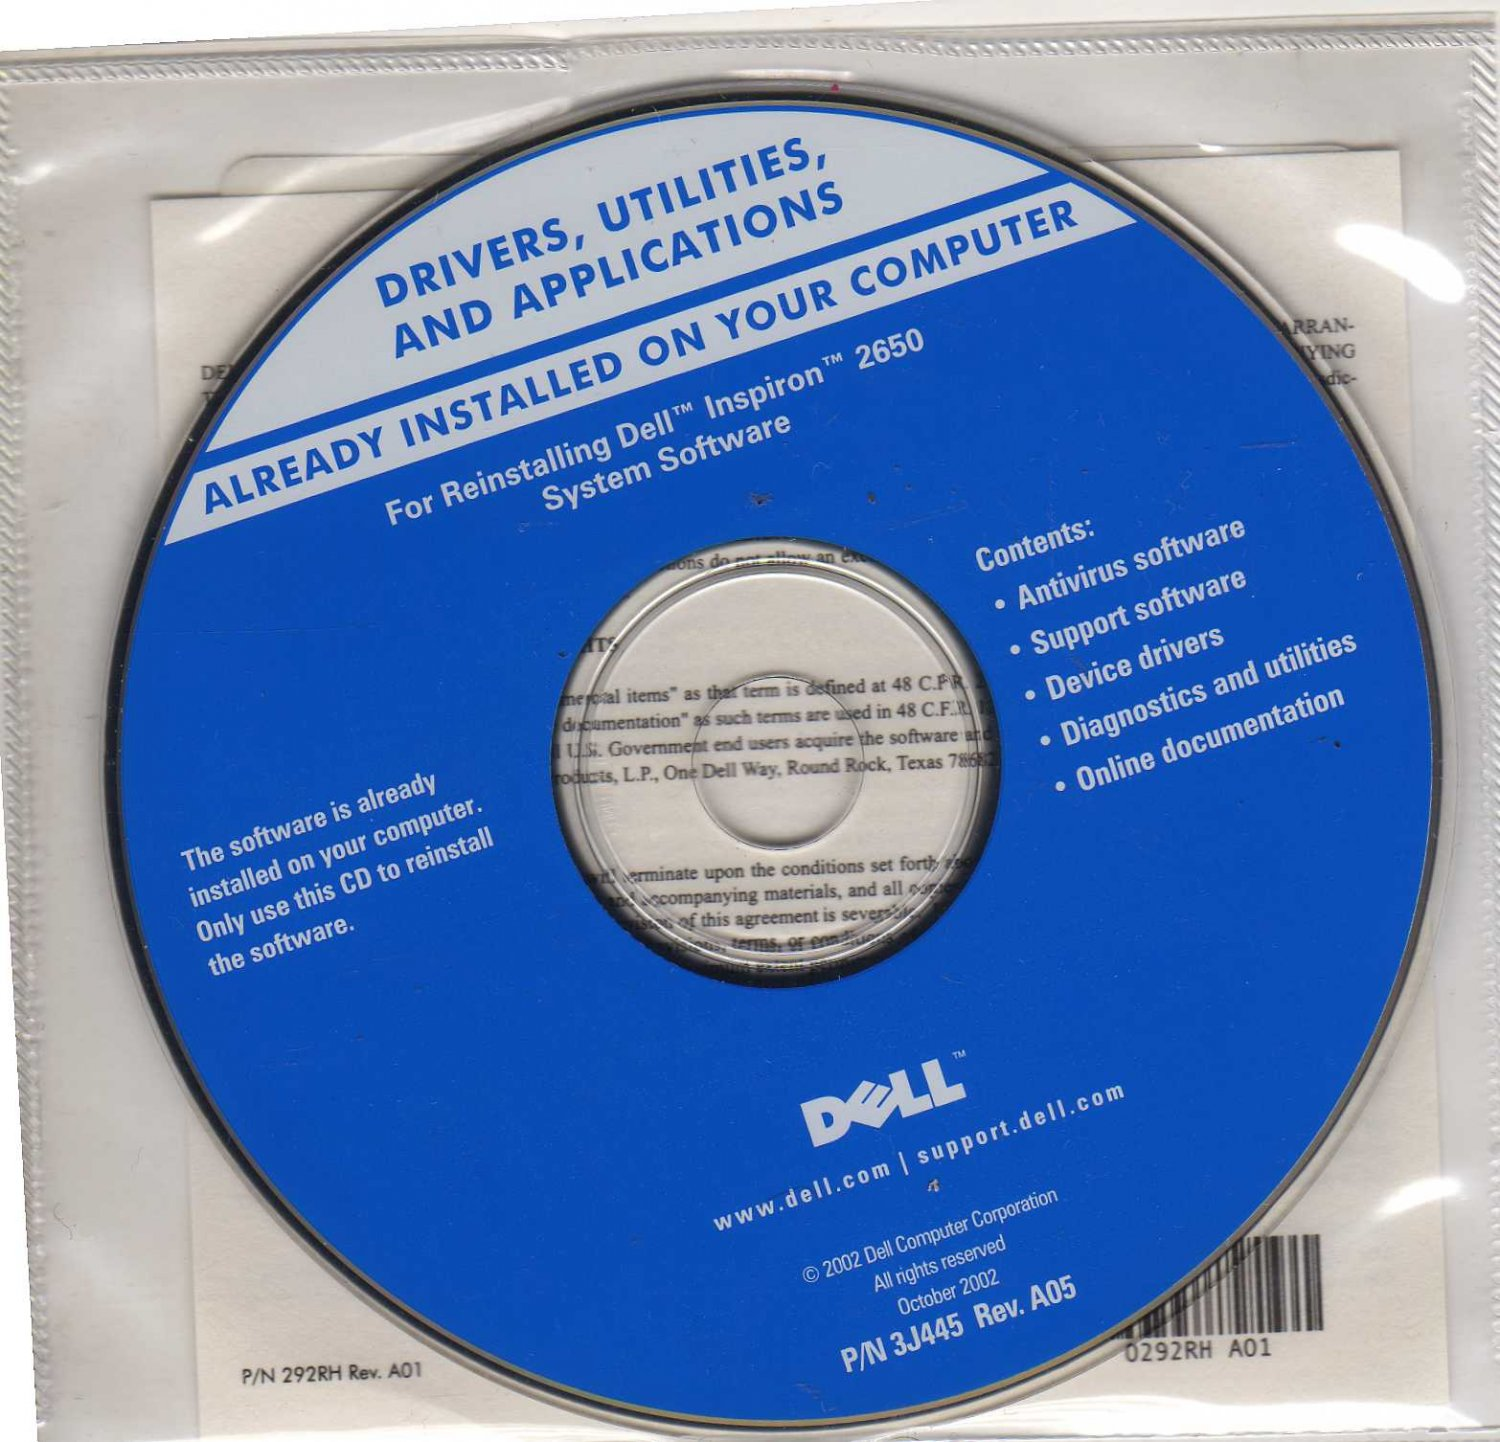 DELL DRIVERS AND UTILITIES CD: For Reinstalling Dell Inspiron 2650 System Software